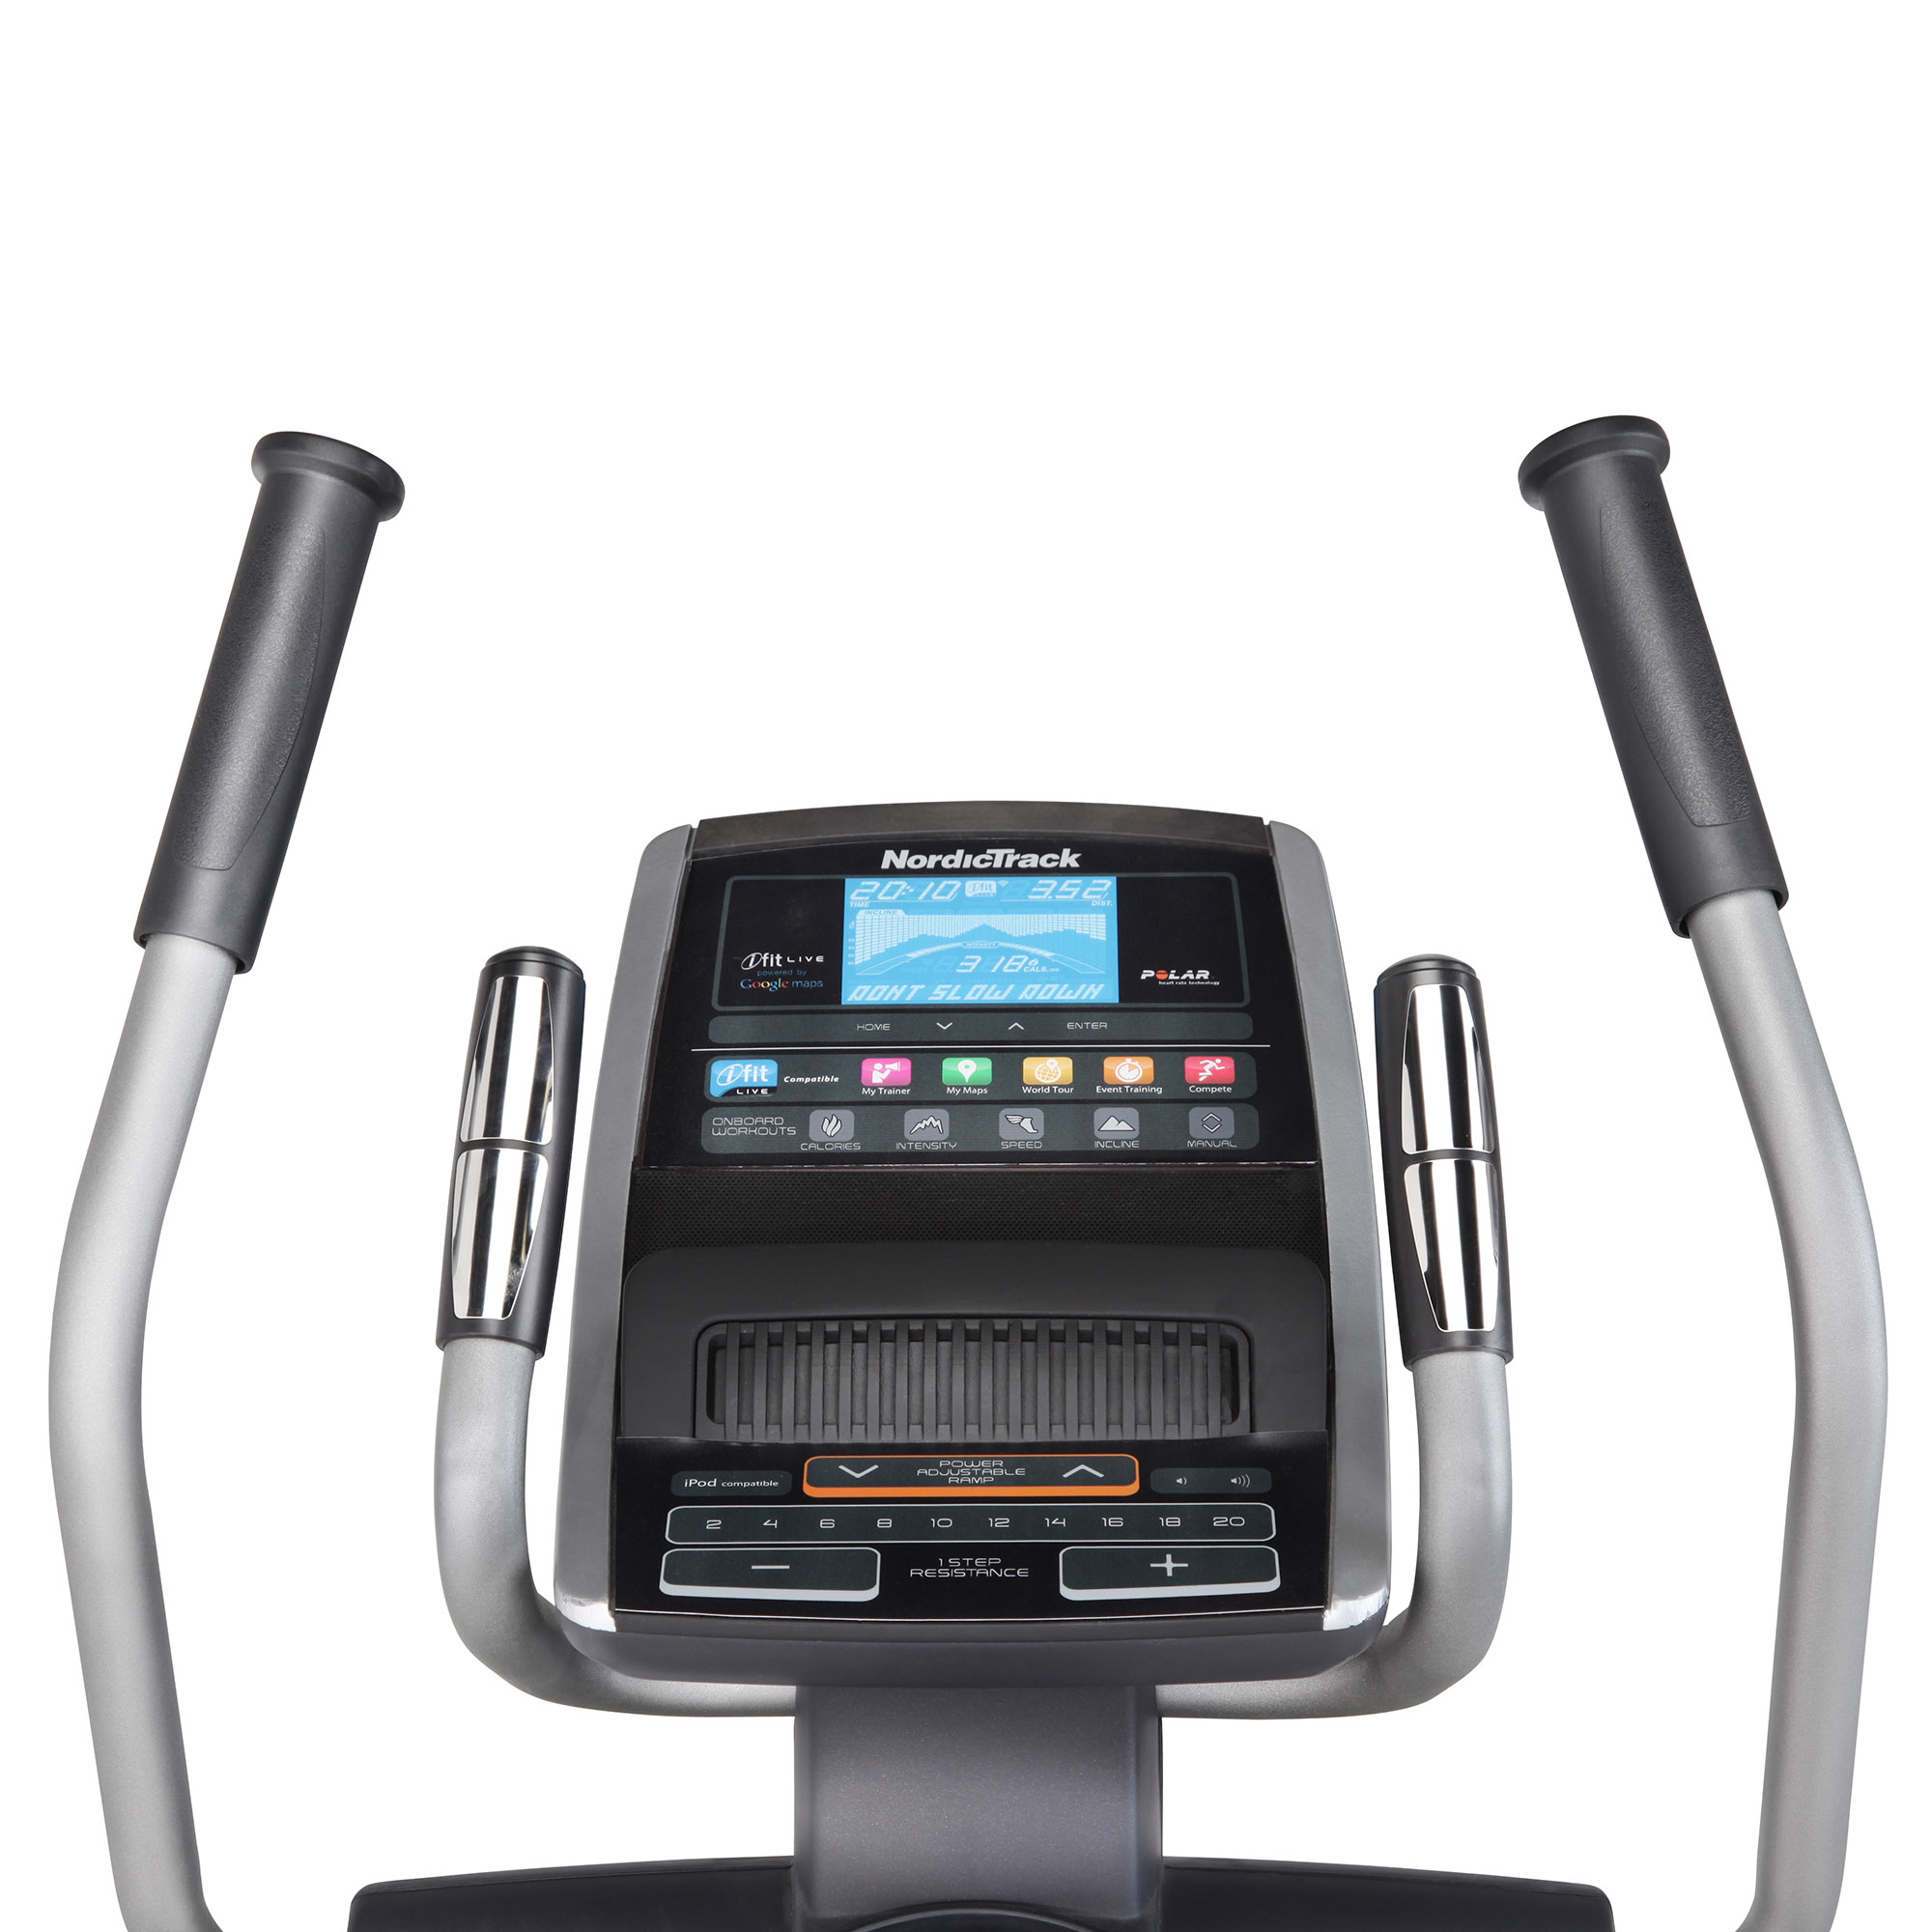 NordicTrack E11.0 Folding Elliptical Cross Trainer Review